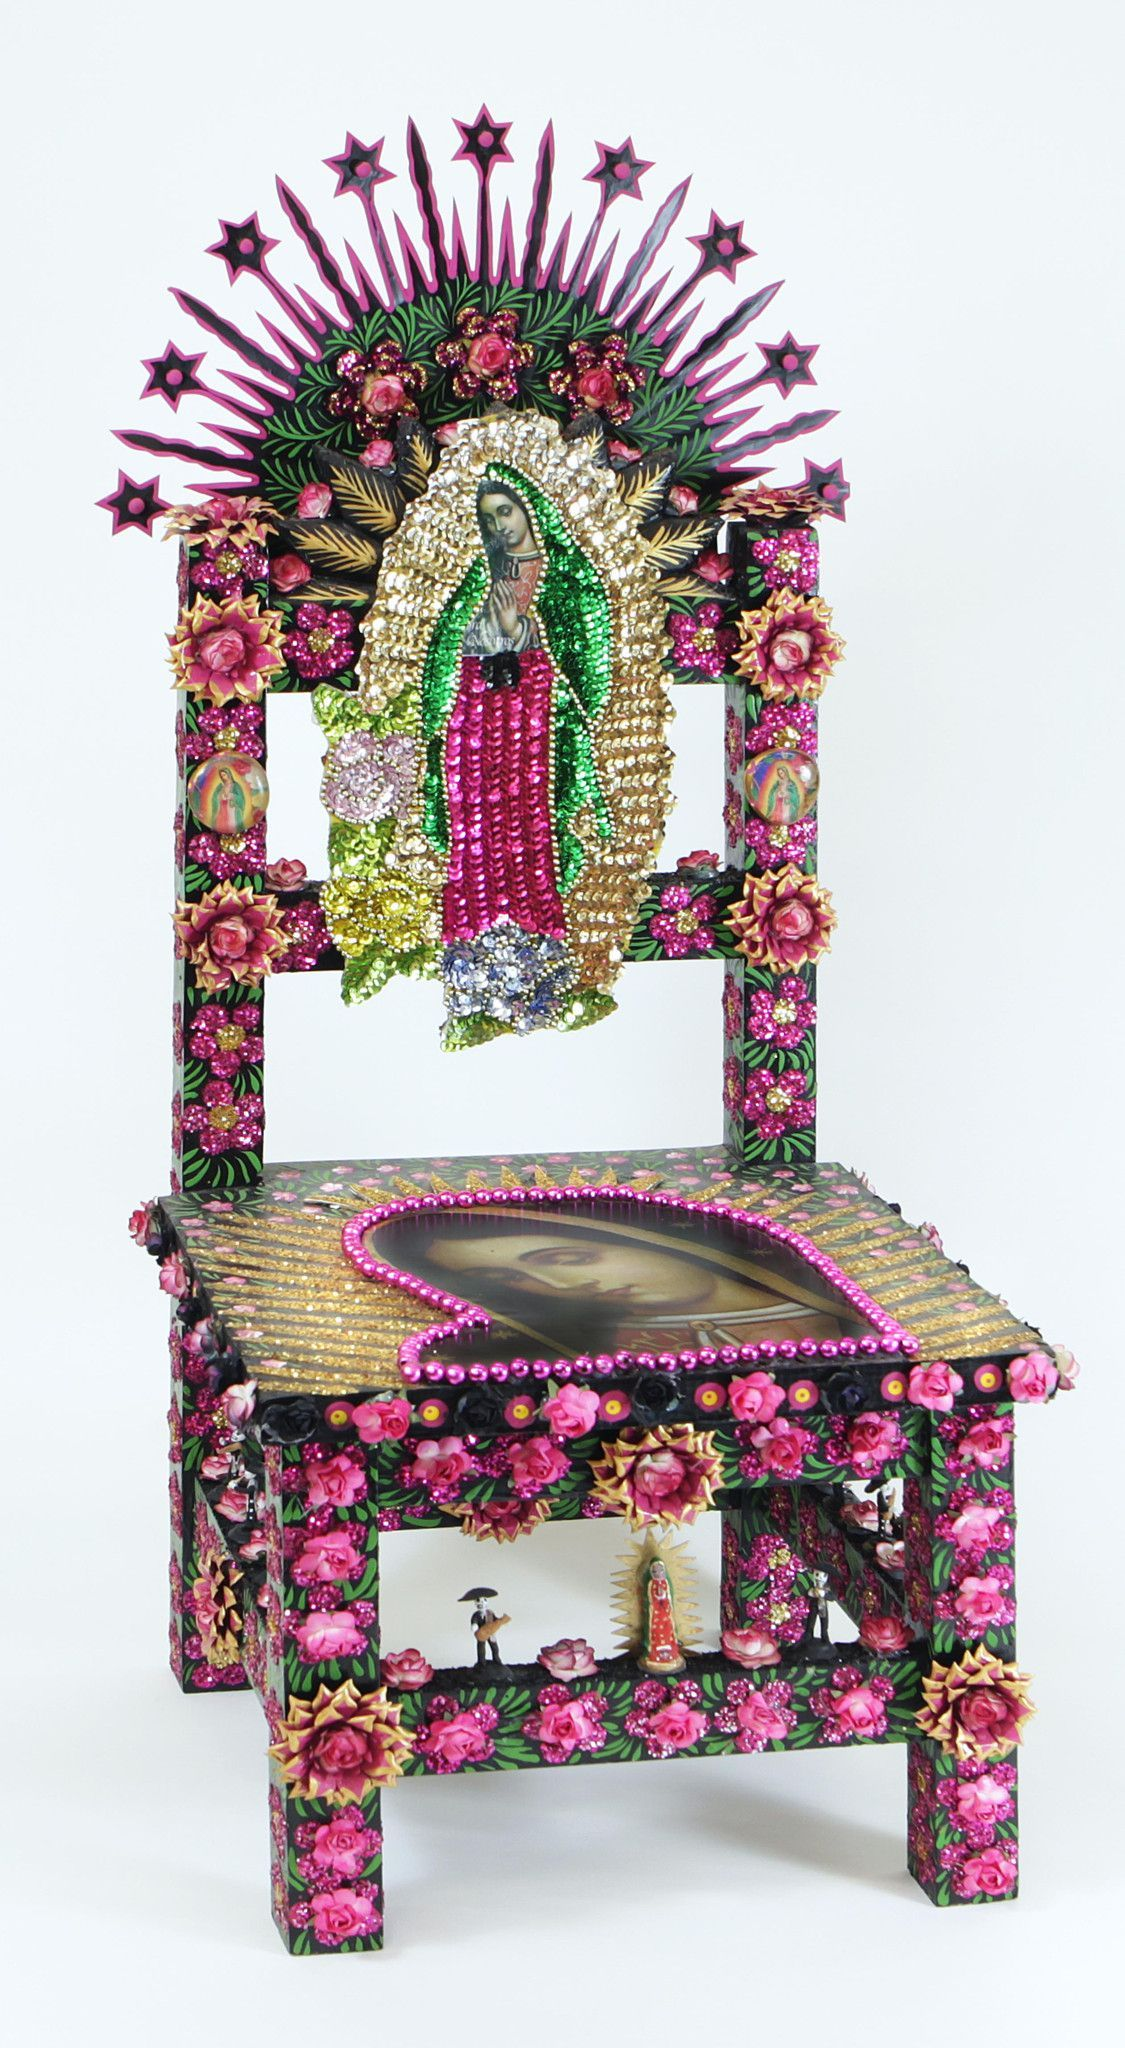 This Vibrant And Imaginatively Decorative Chair Featuring